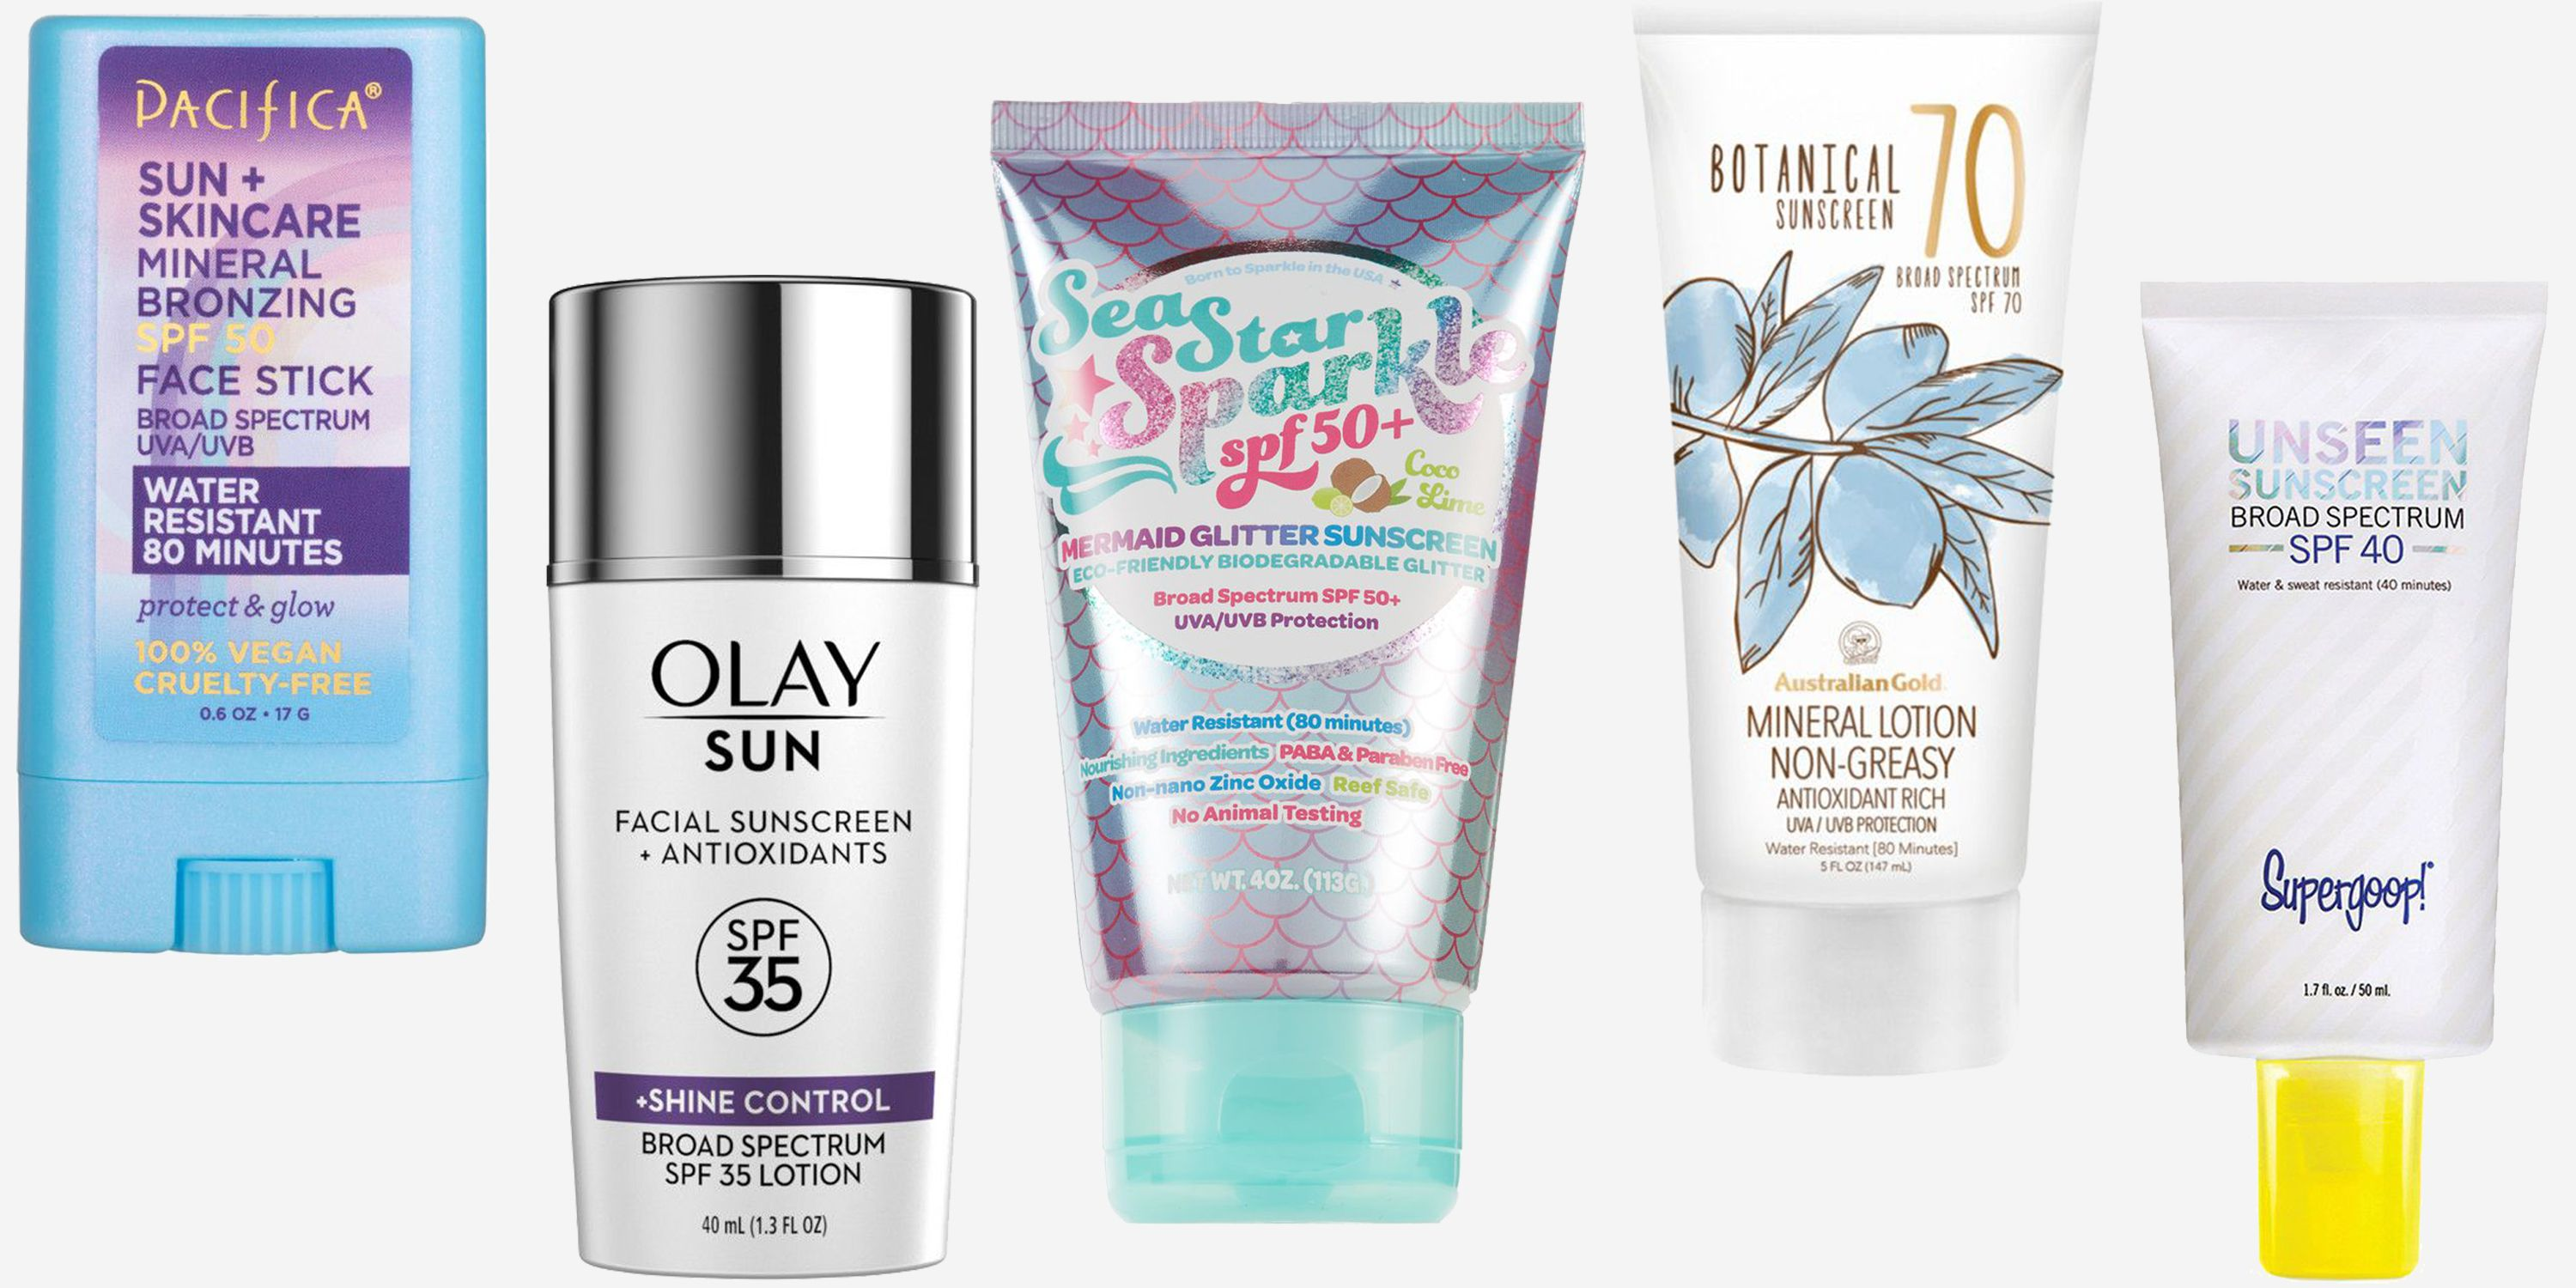 11 Best New Sunscreens - Best Sunscreens for Face and Body